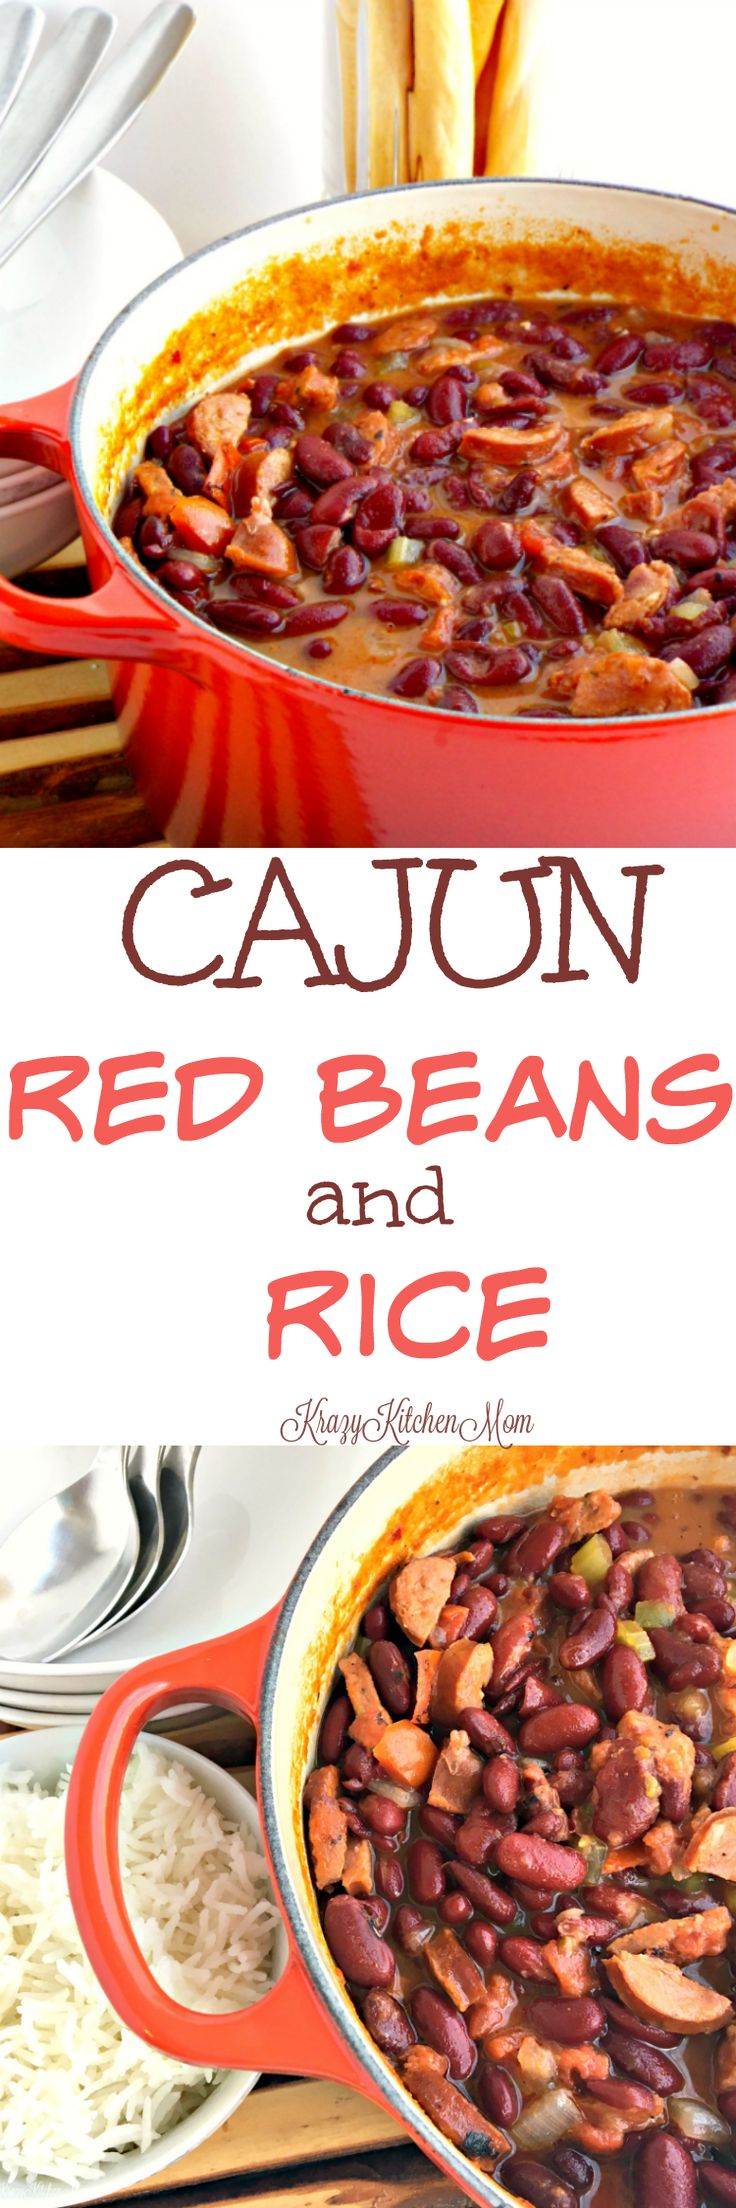 Cajun Red Beans and Rice A spicy pot of Cajun Red Beans and Rice - just perfect for a cool evening. It's packed with andouille sausage and hearty red kidney beans.